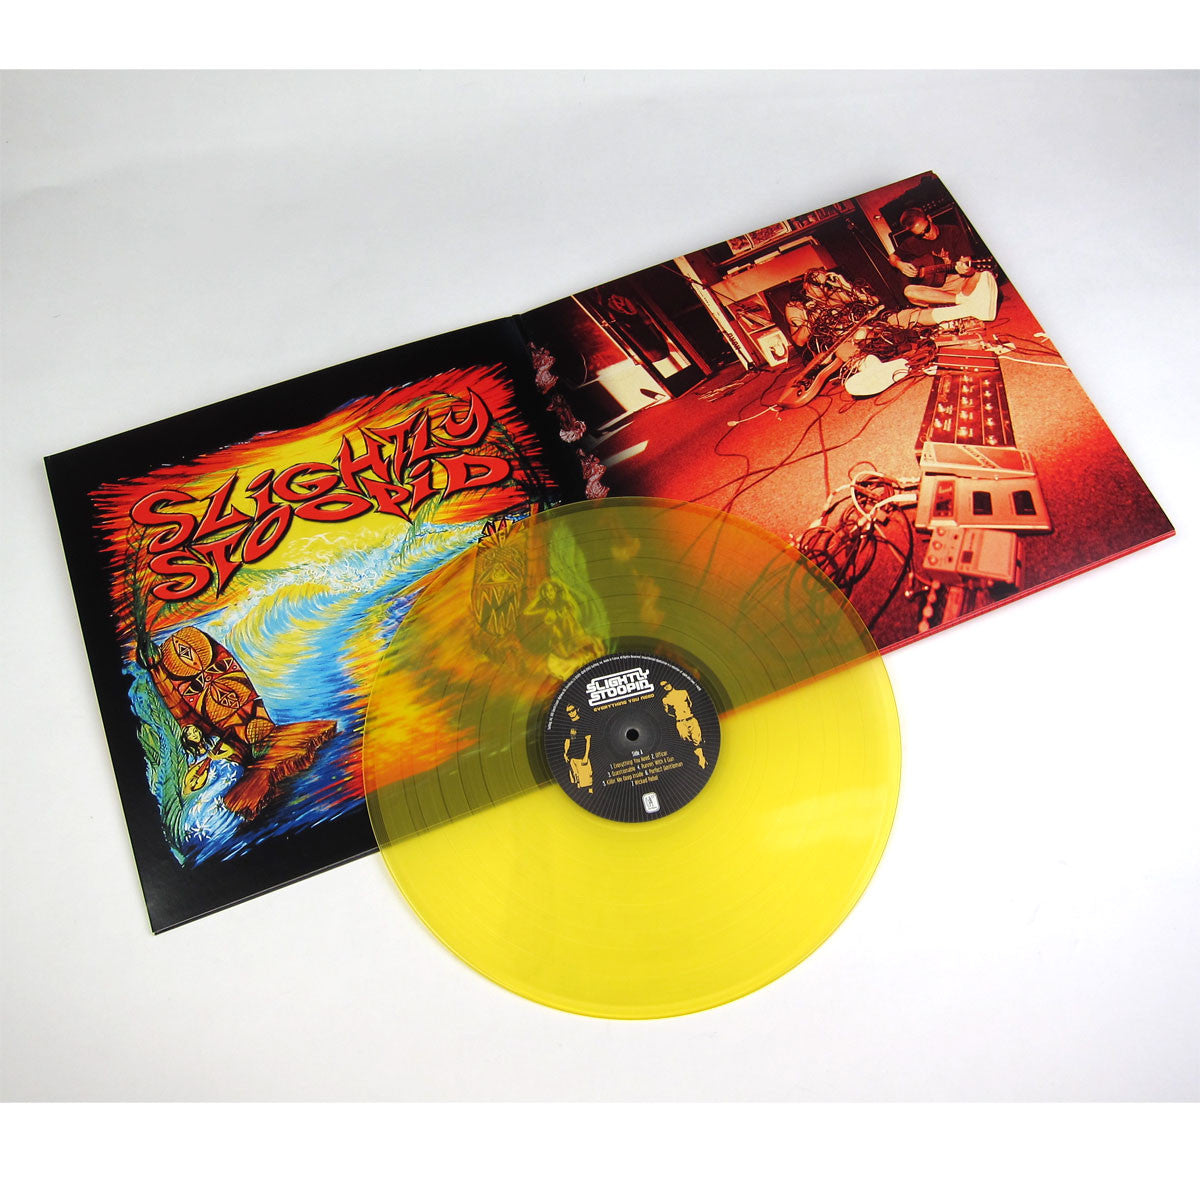 Slightly Stoopid: Everything You Need (Colored Vinyl, Free MP3) Vinyl LP detail